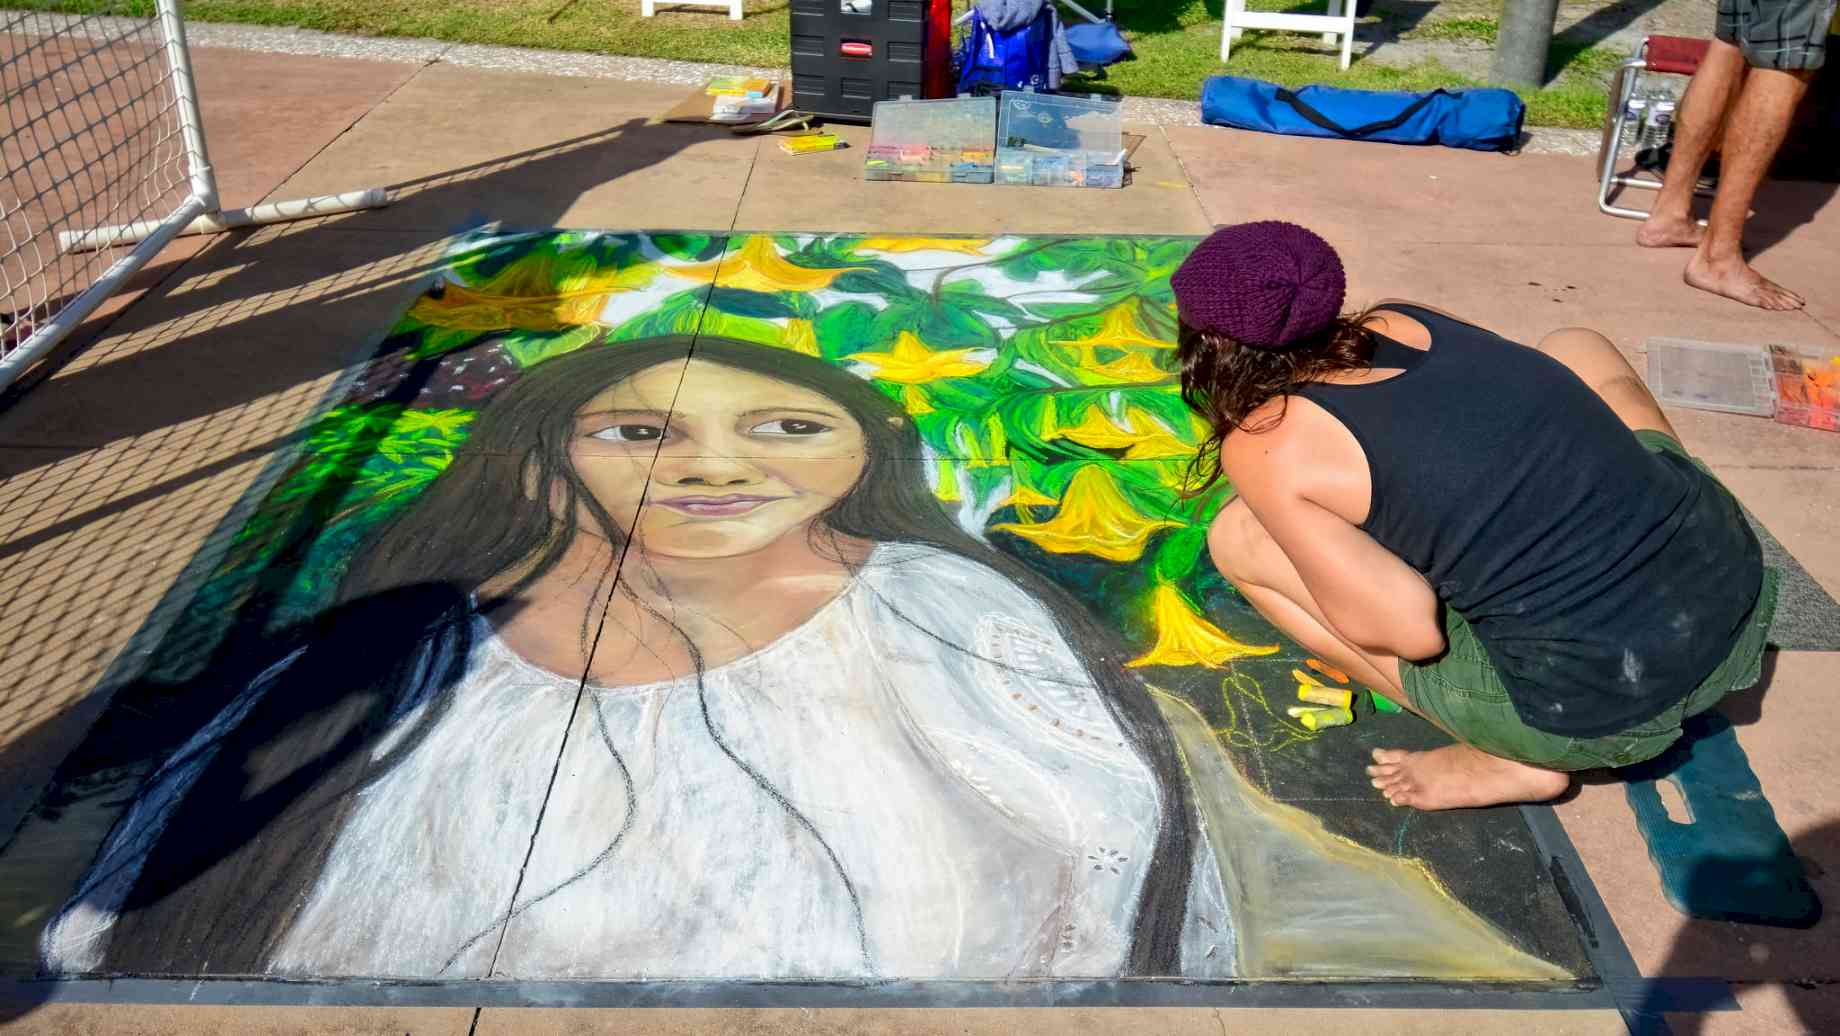 6th Annual Chalk Art Festival at Beach Walk along Clearwater Beach by Walter - Licensed by CC 2.0